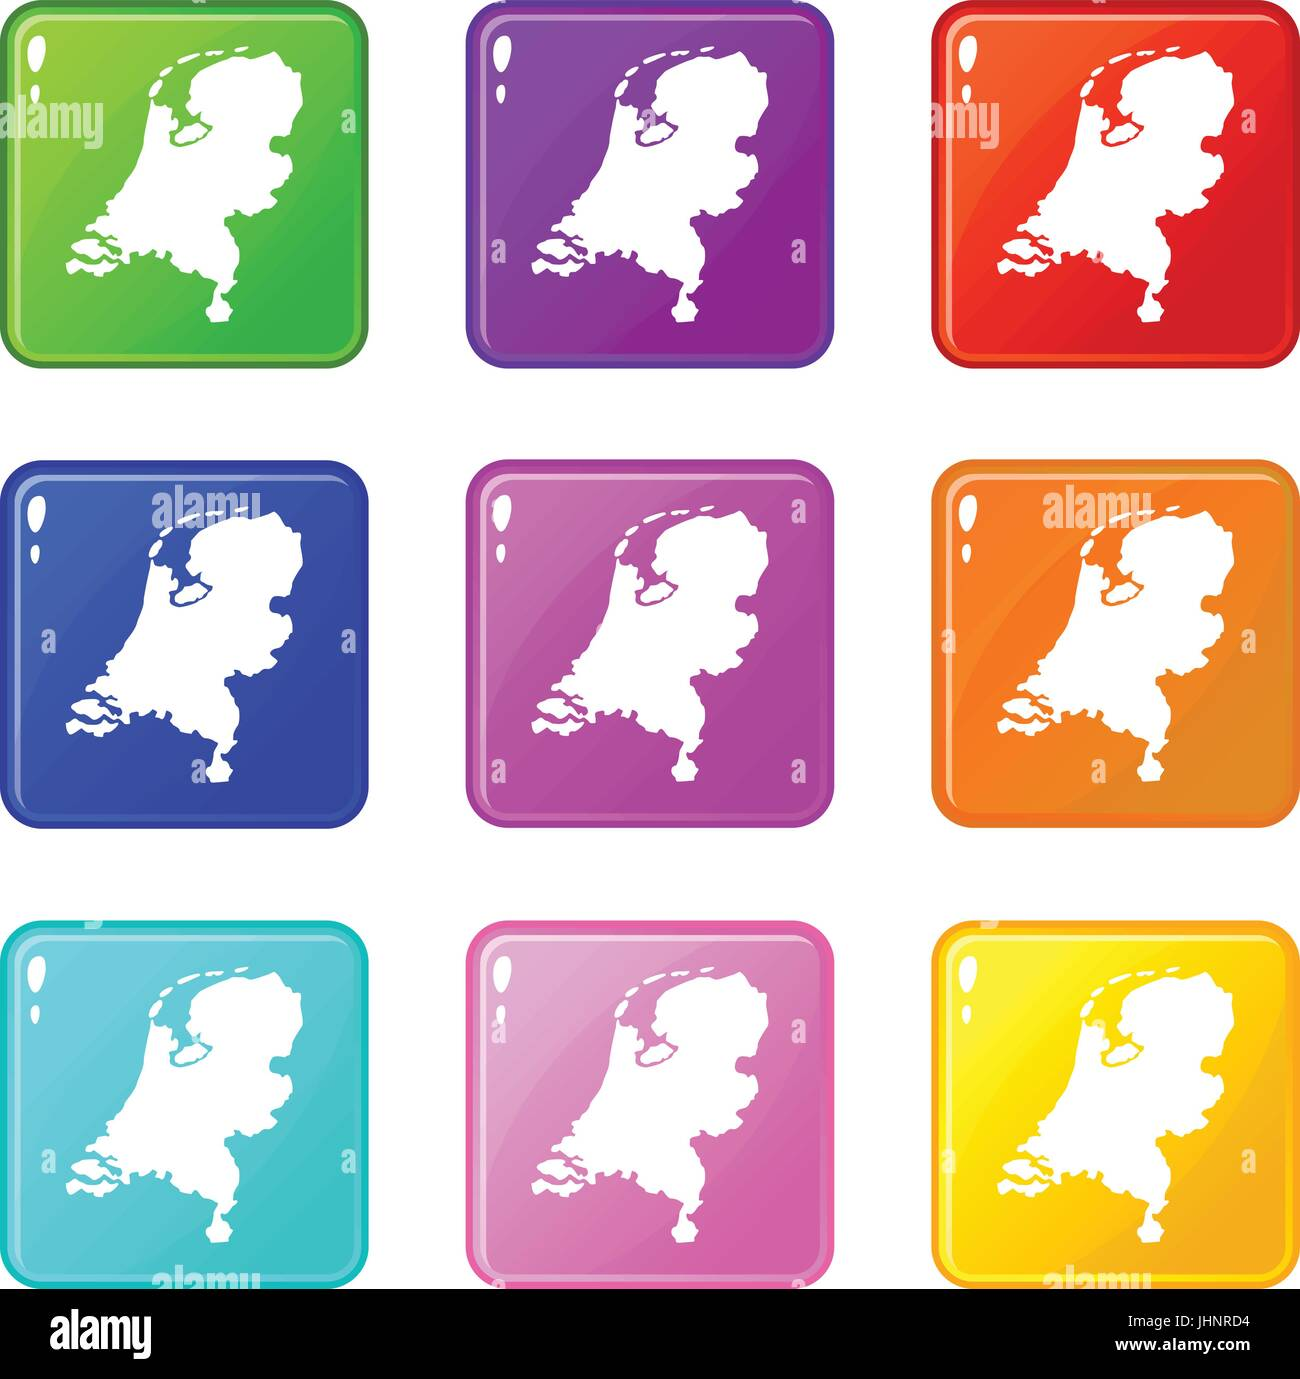 Holland map icons 9 set - Stock Vector